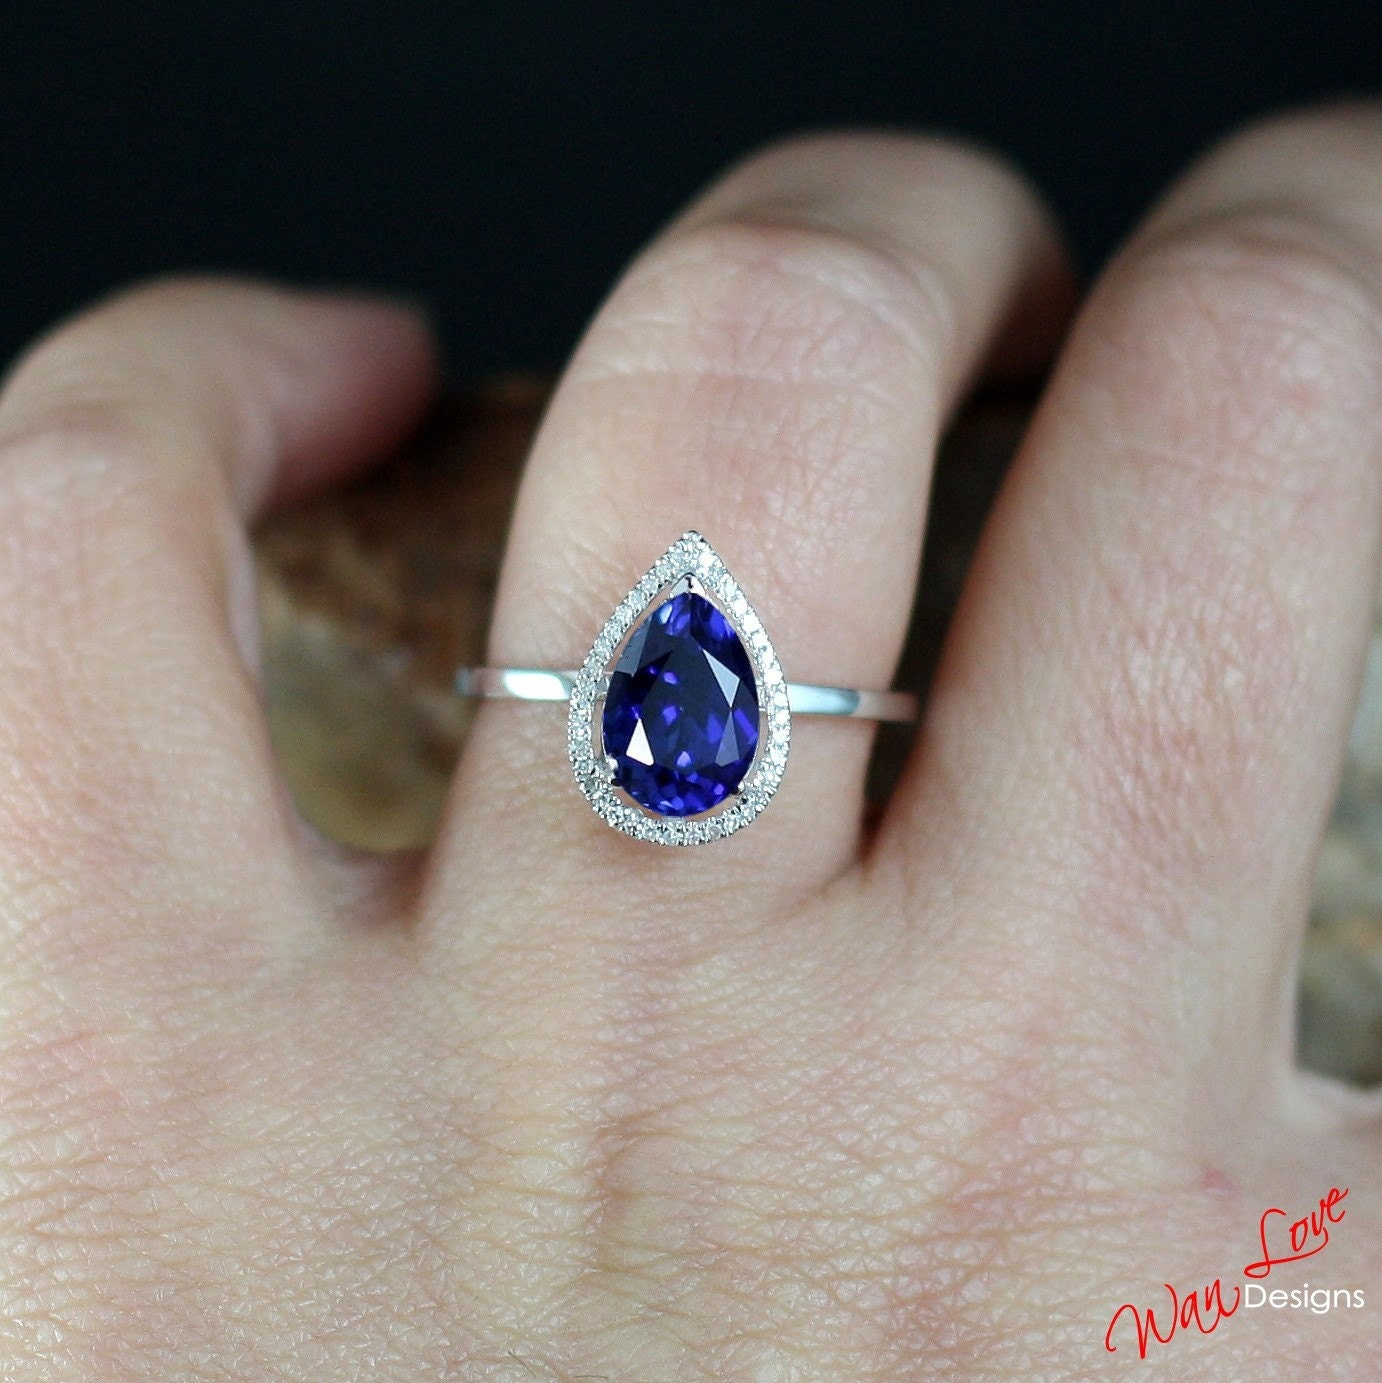 charles products saveweb sapphire jewelers cj ring img